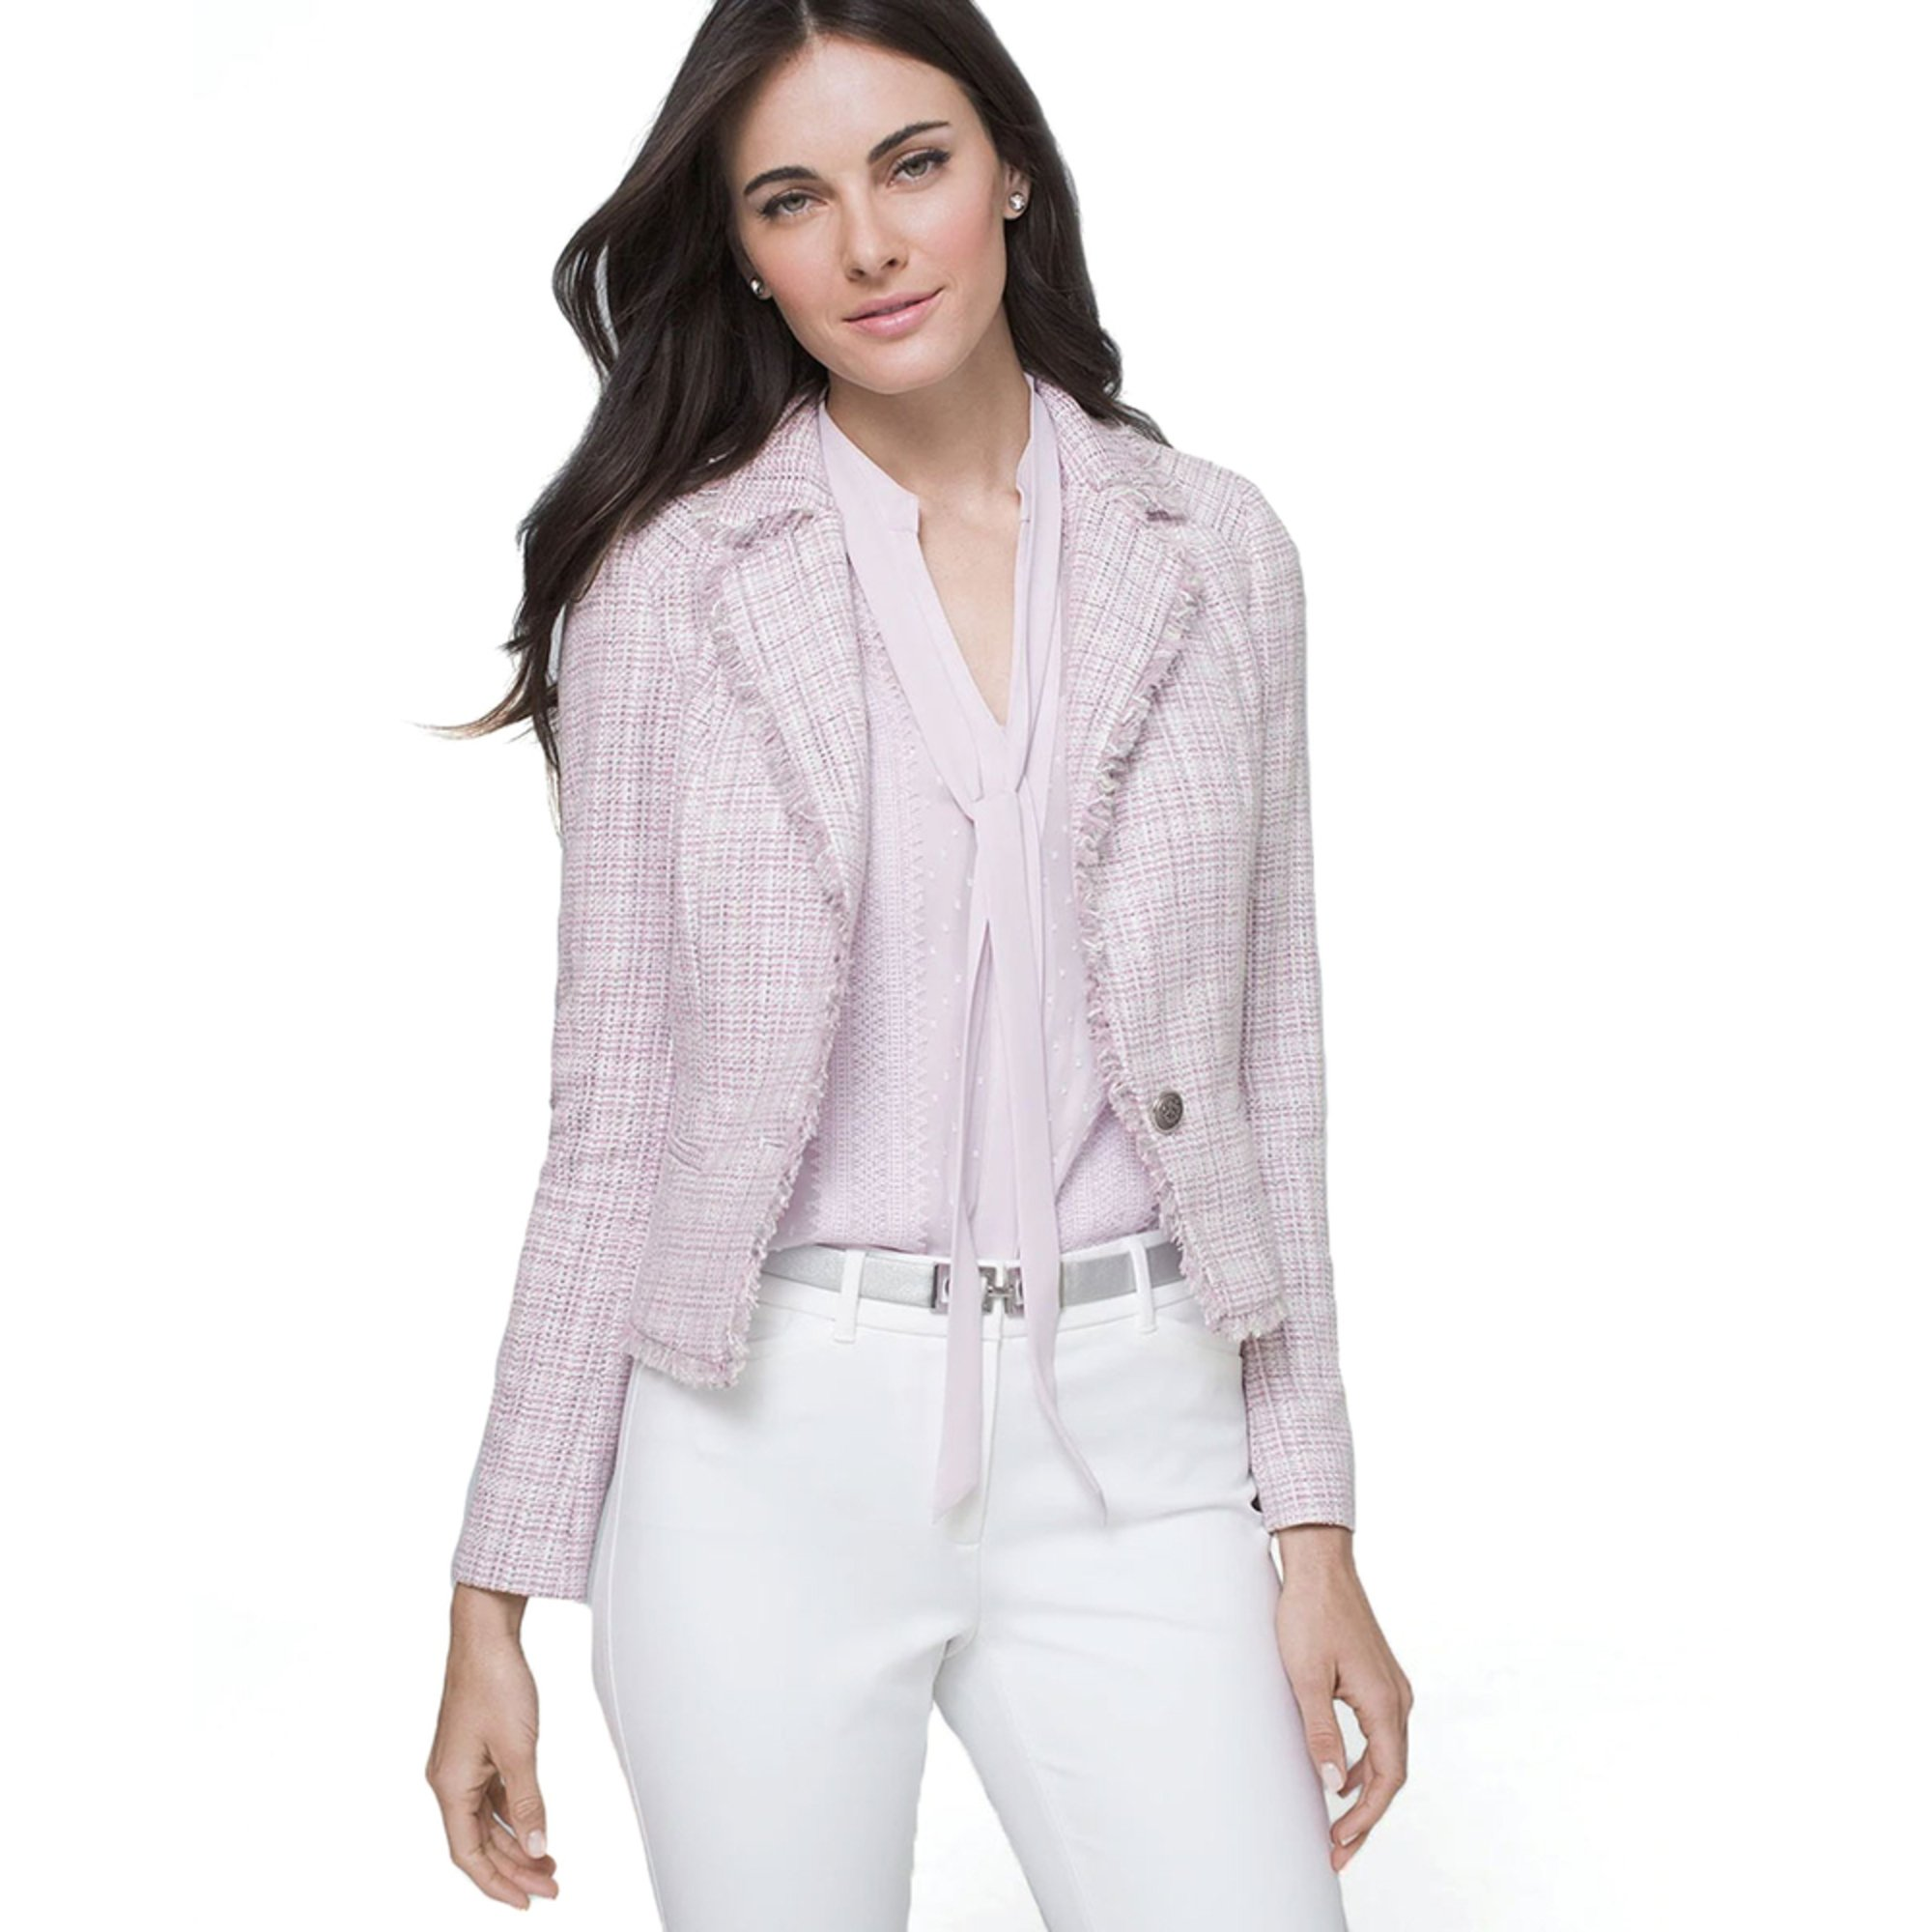 9417dc3d6cb White House Black Market Women's Tweed Jacket | Casual & Dress ...